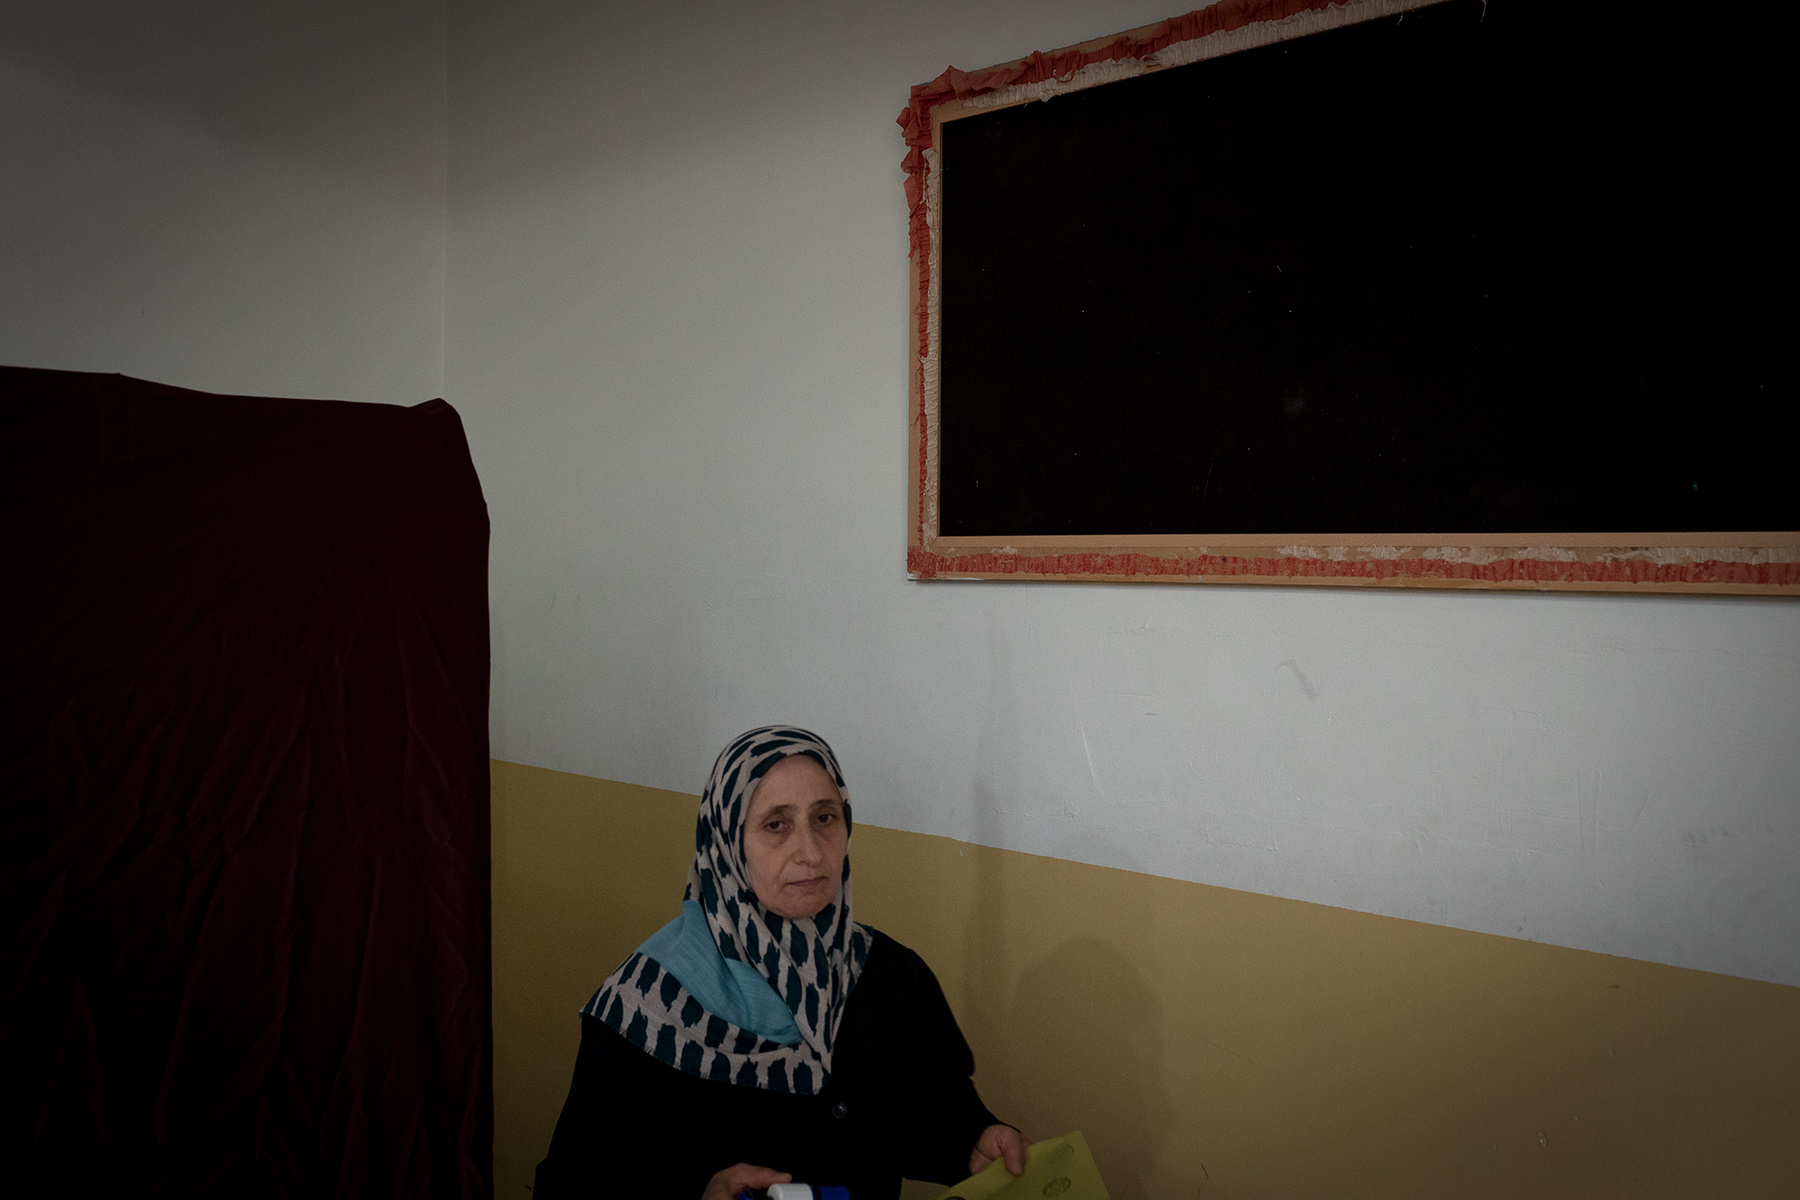 A woman leaves a polling booth in a school of Yalova during the elections day on June 24, 2018